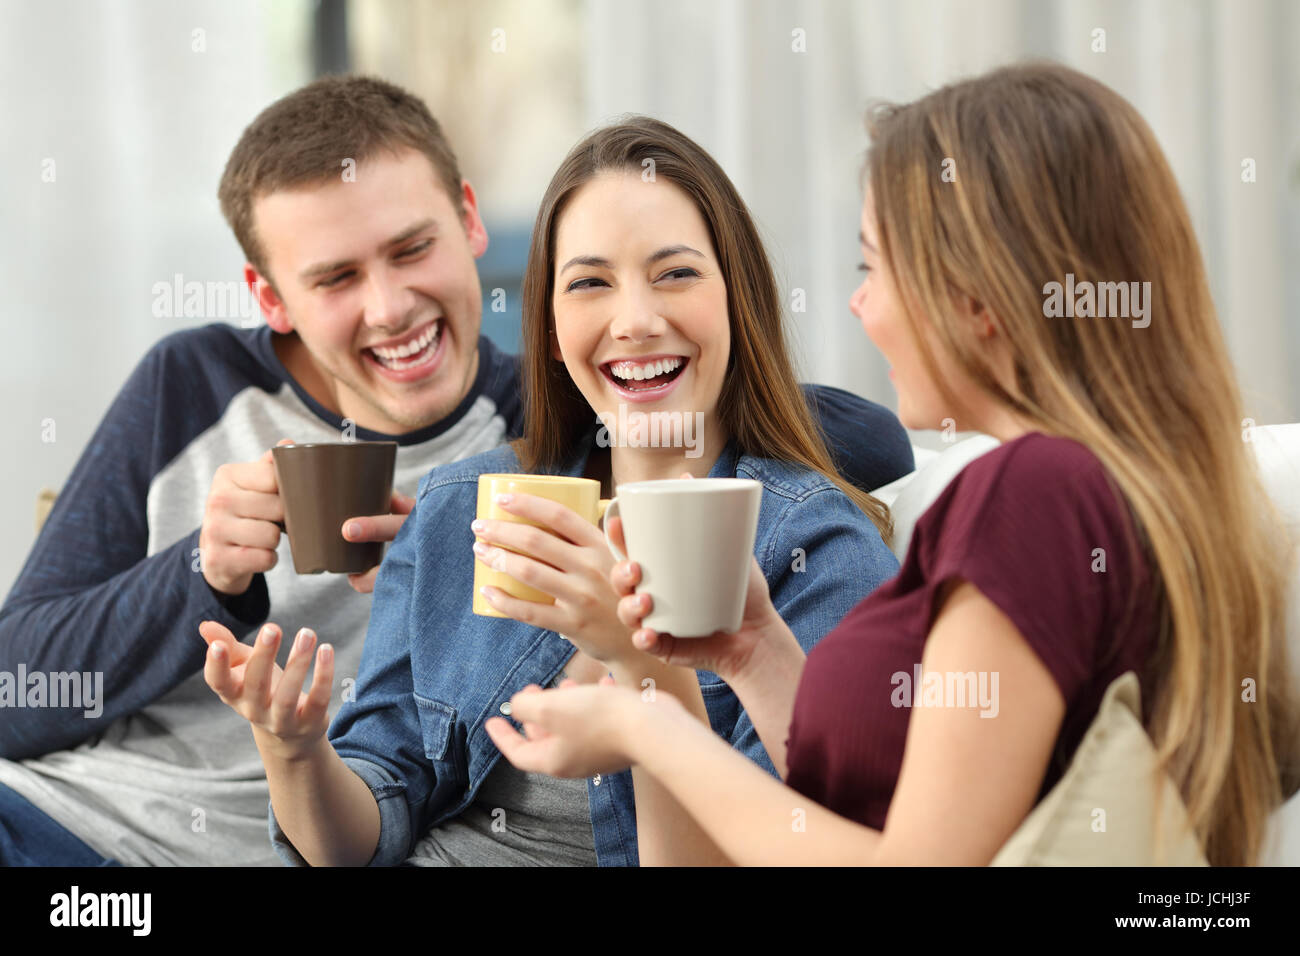 Three happy friends talking and laughing loud holding drinks sitting on a sofa in the living room at home - Stock Image